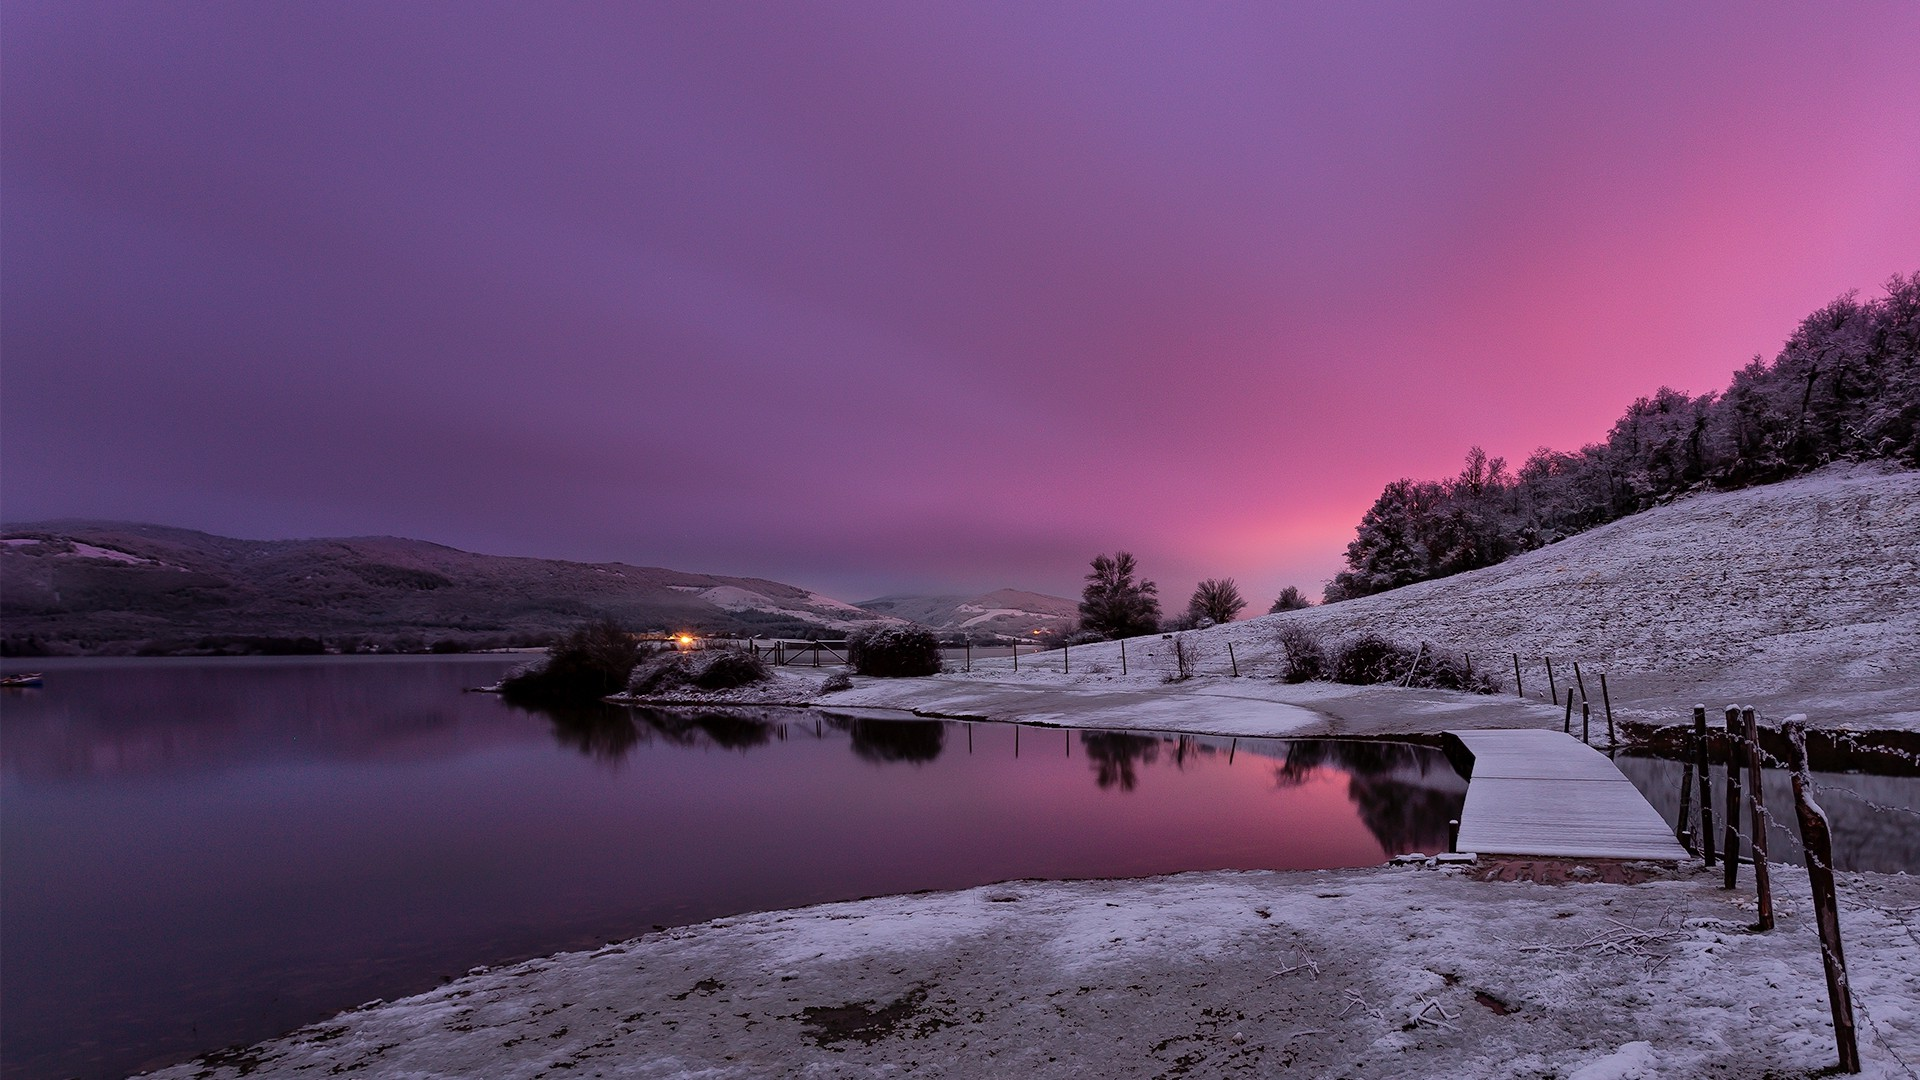 Free Animal Wallpaper Backgrounds Nature Landscape Water Trees Clouds Winter Snow